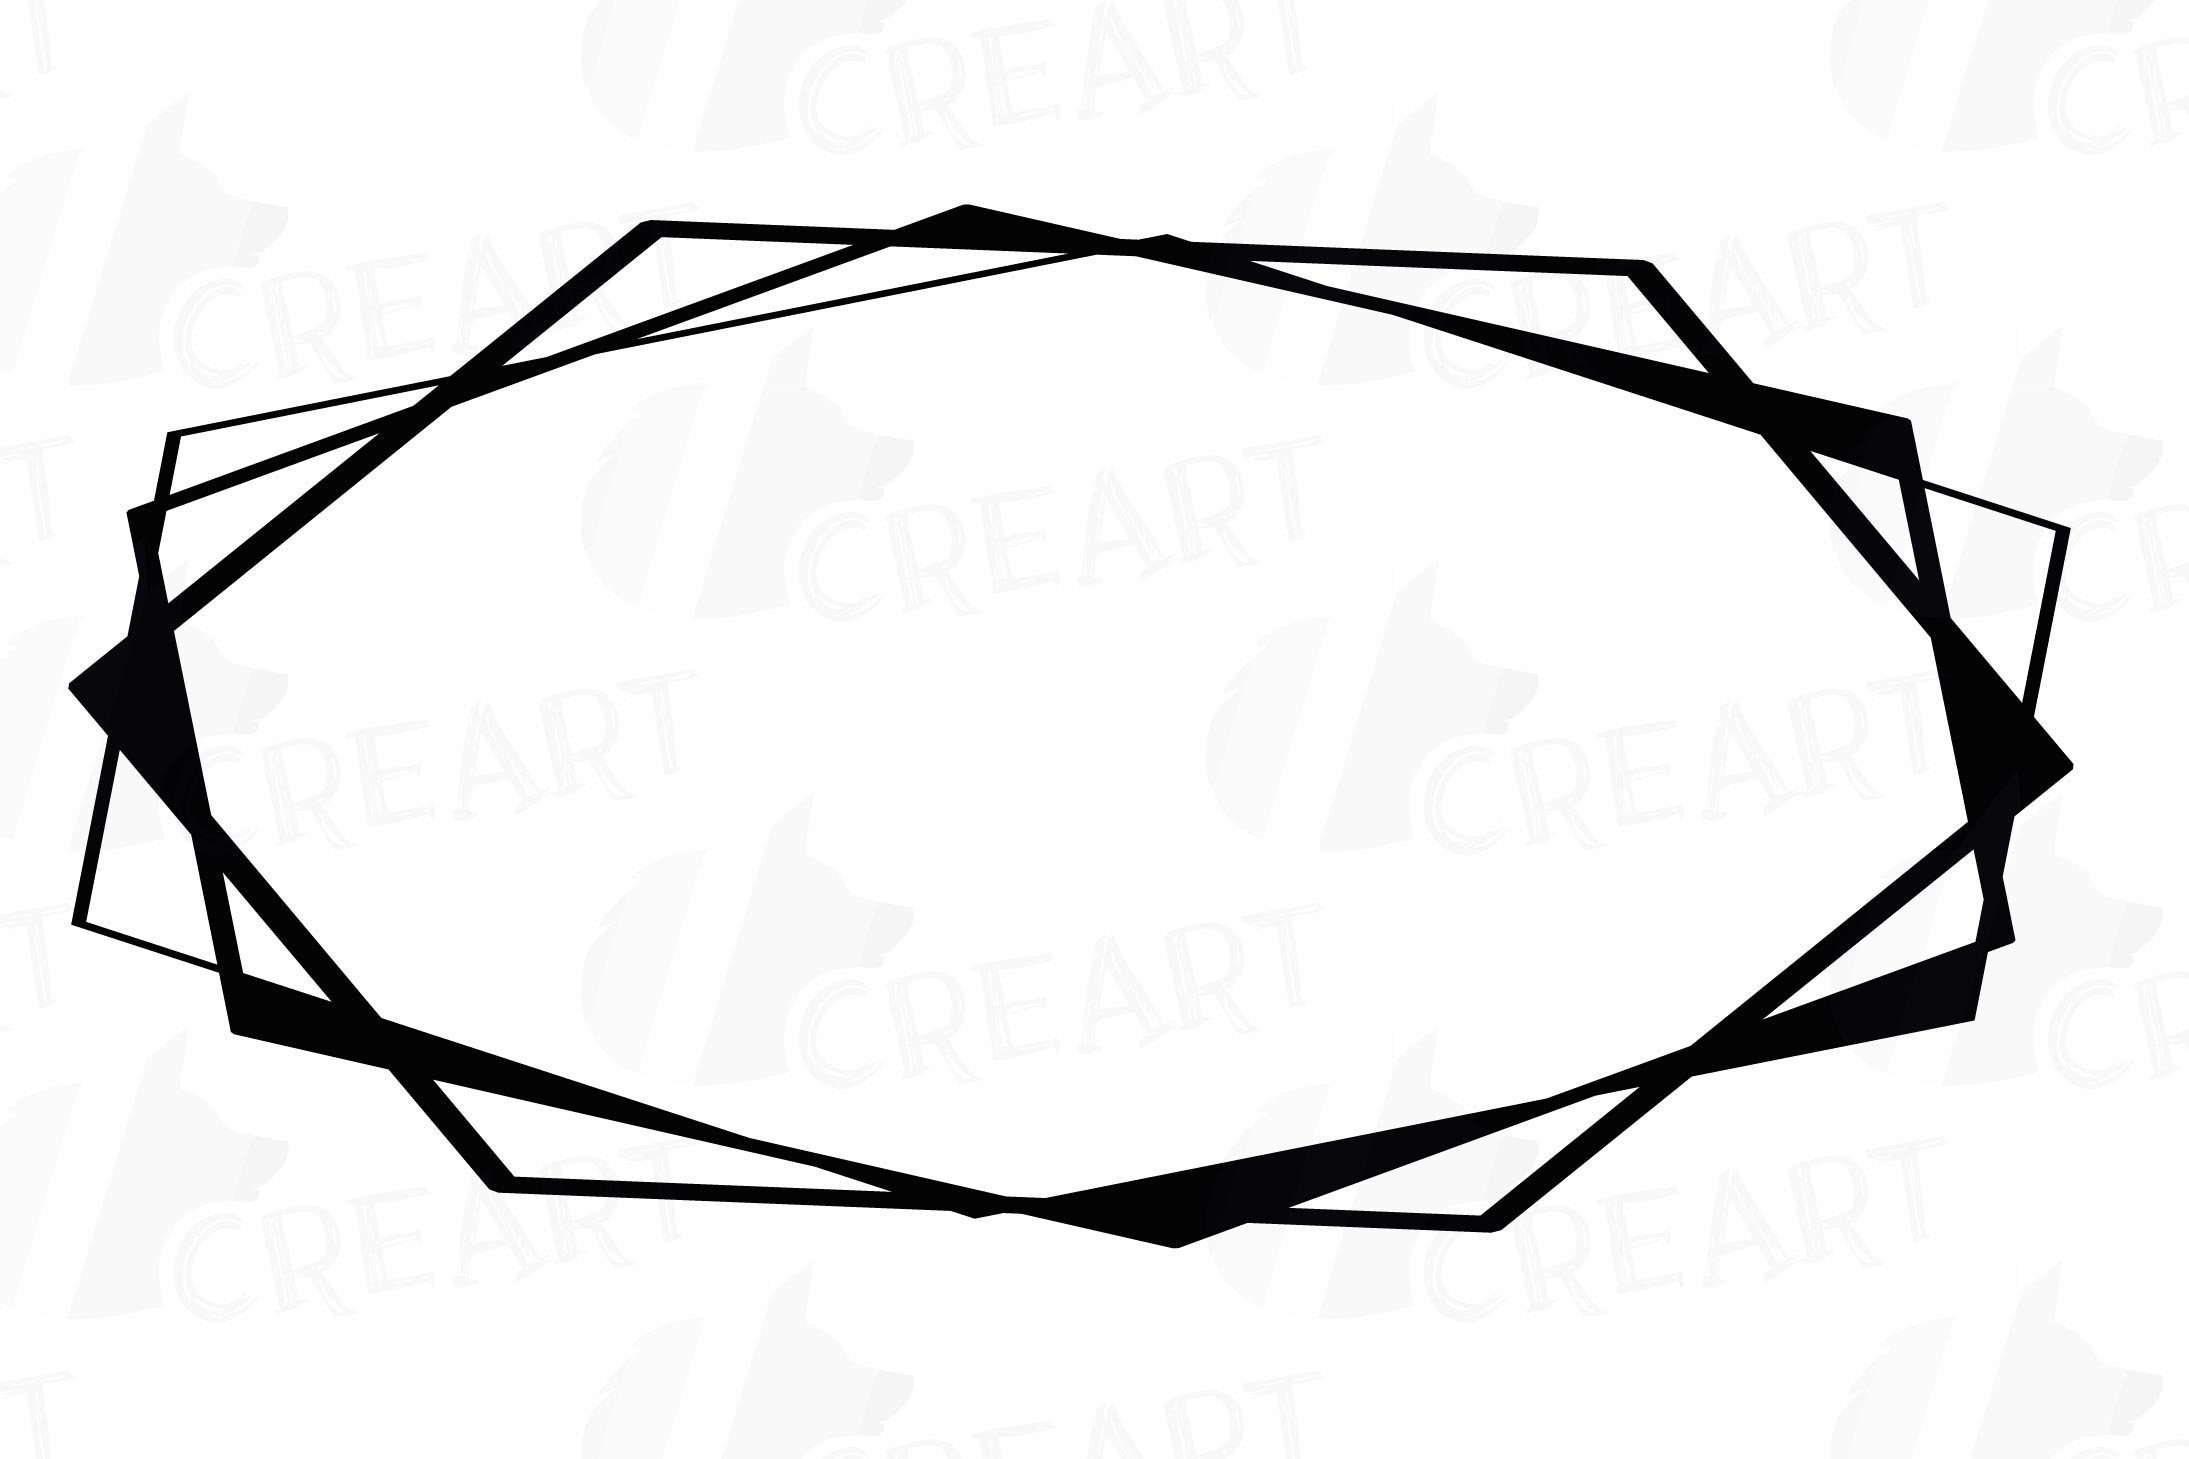 Chaotic geometric black frames, lineal frames clip art example image 9